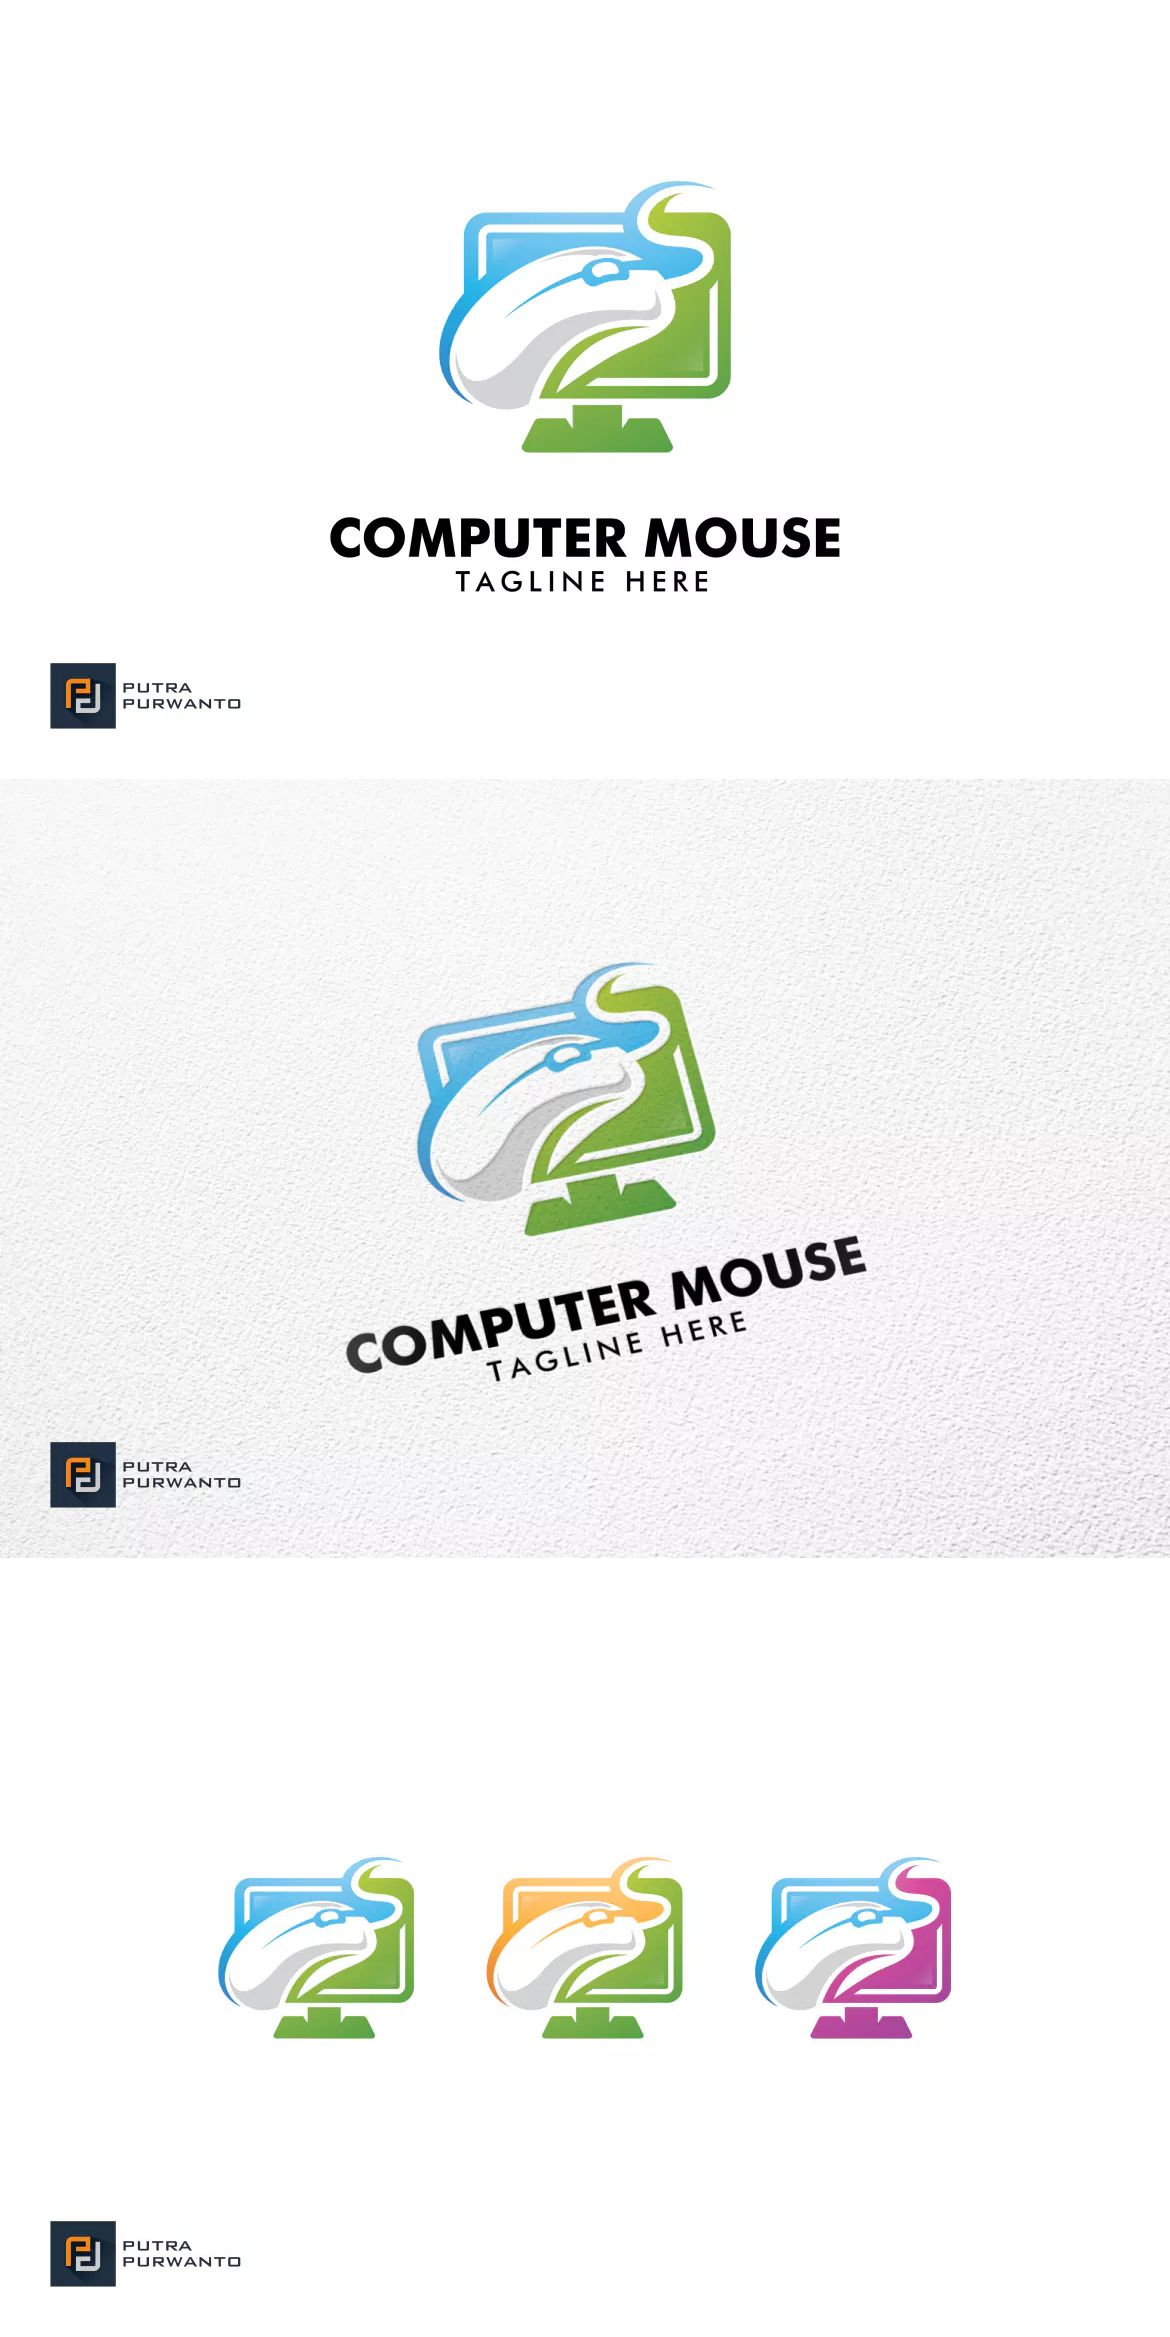 Computer Mouse Logo Template by putra_purwanto on